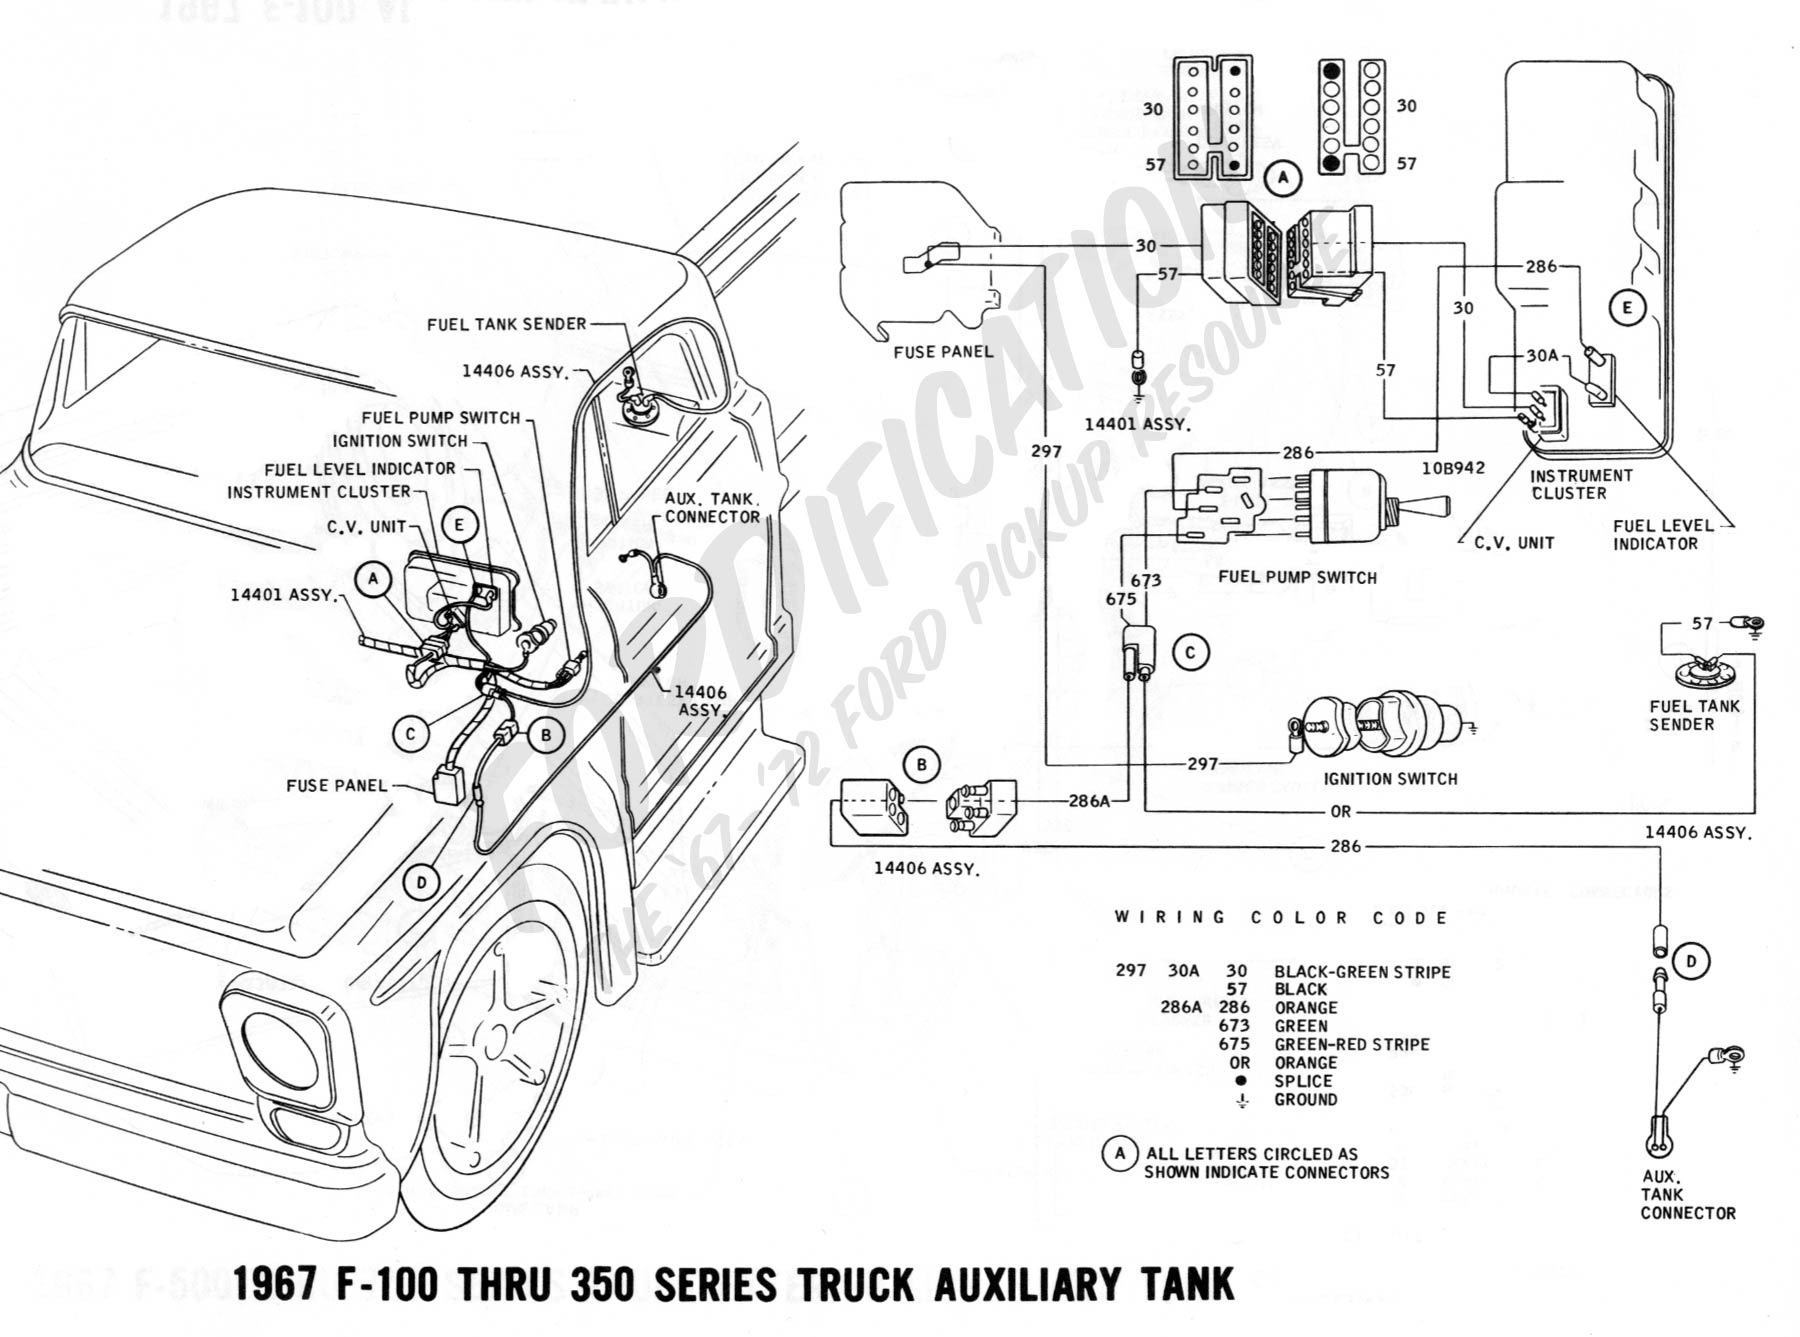 1979 Ford E150 Wiring Diagram Library 2006 Fuse Truck Technical Drawings And Schematics